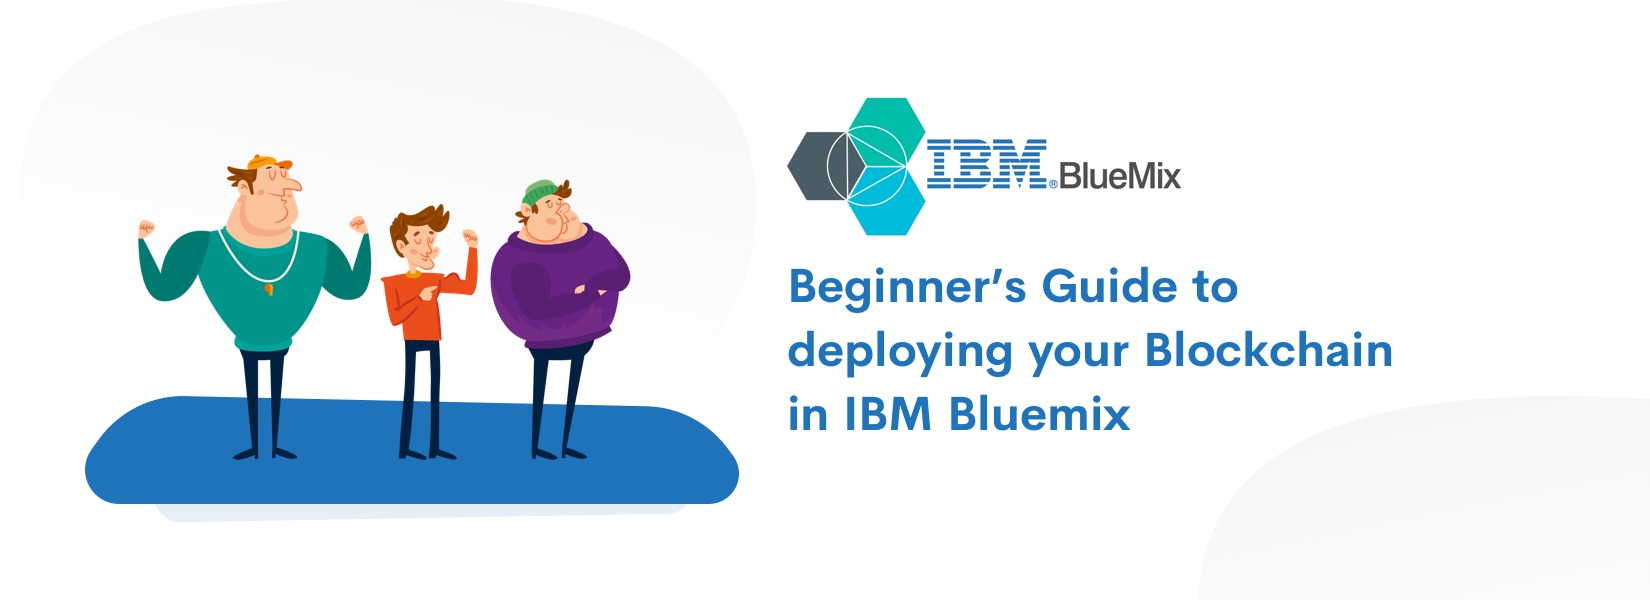 Beginner's Guide to deploying your Blockchain in IBM Bluemix